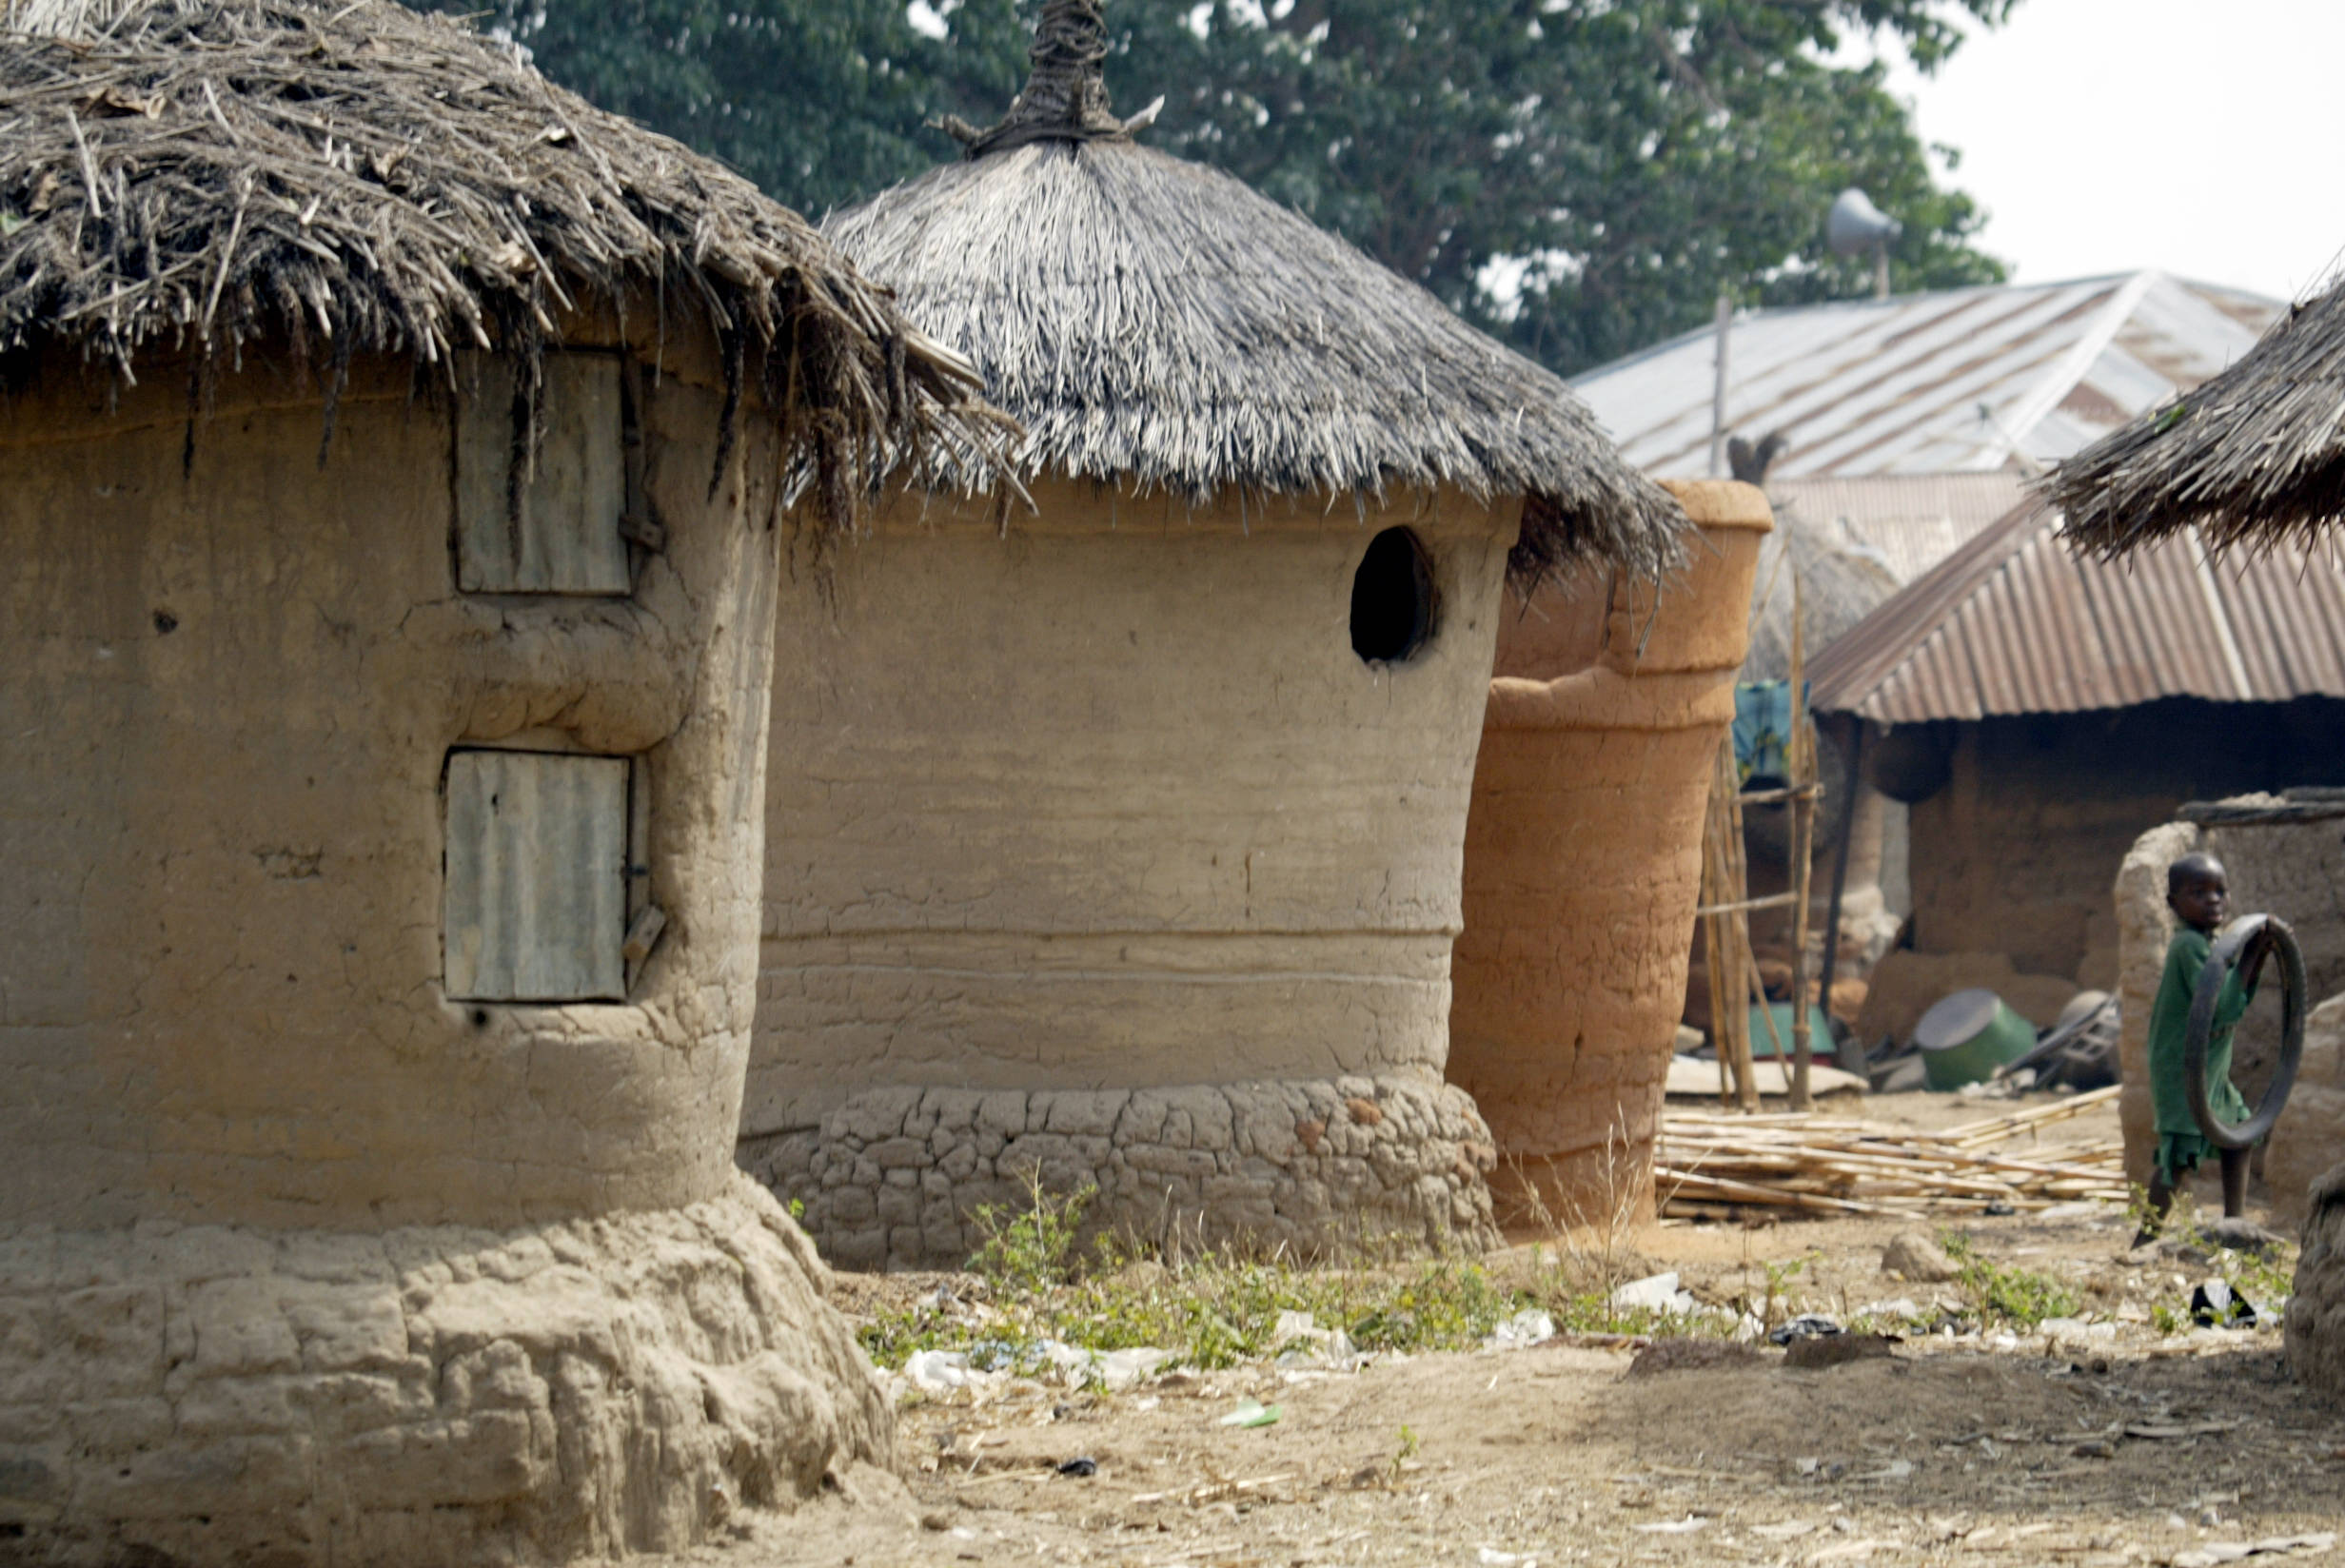 Hut built for food storage and preservation of animal feeds at Kilankwa district of Abuja. This was, and still remains the mode of preserving valuables in nothern Nigeria, before the advent of modern storage facilites.